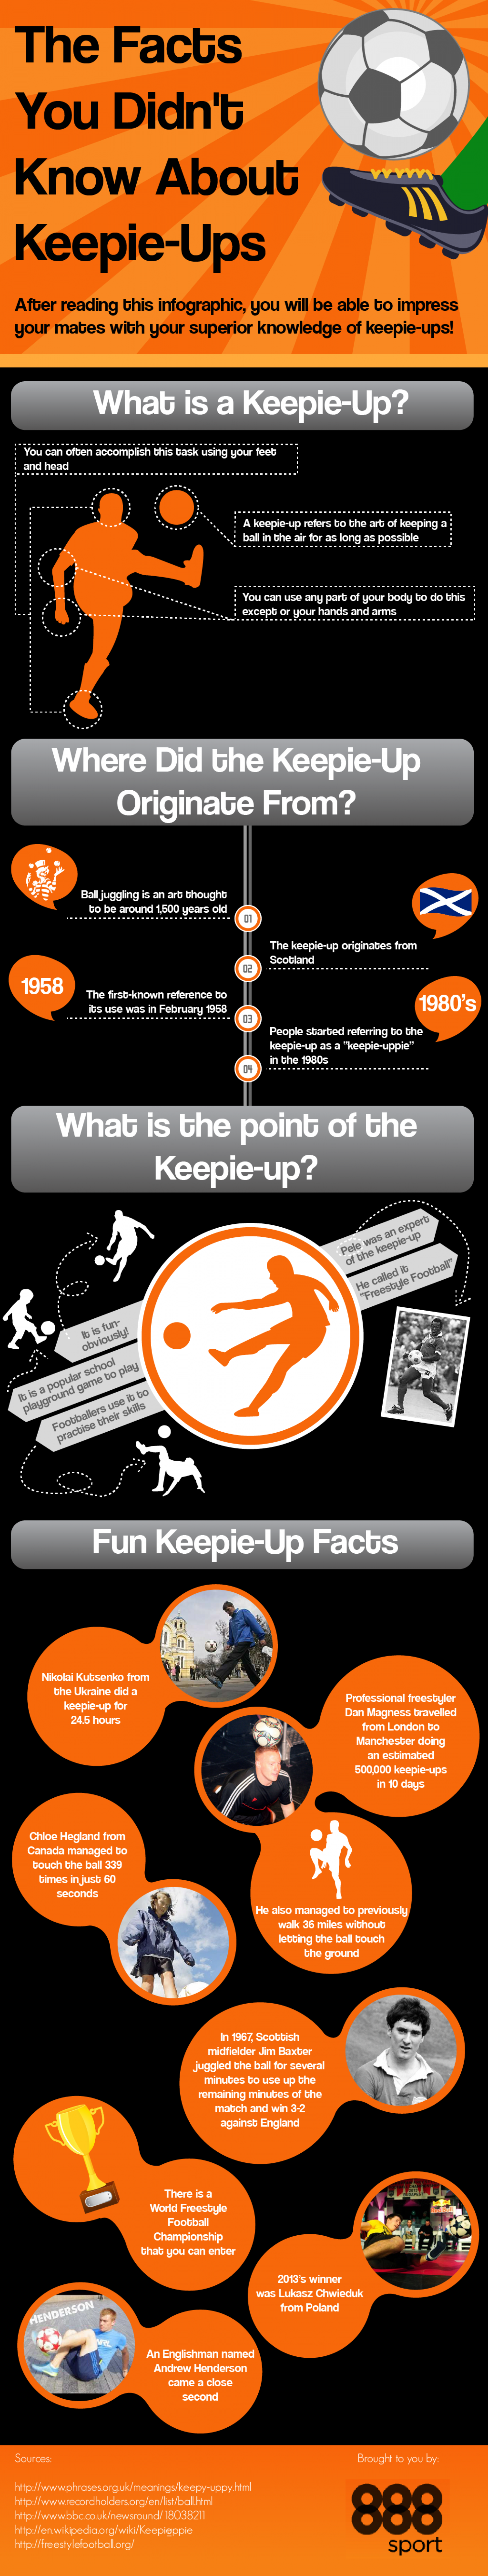 The Facts You Didn't Know About Keepie-Ups Infographic